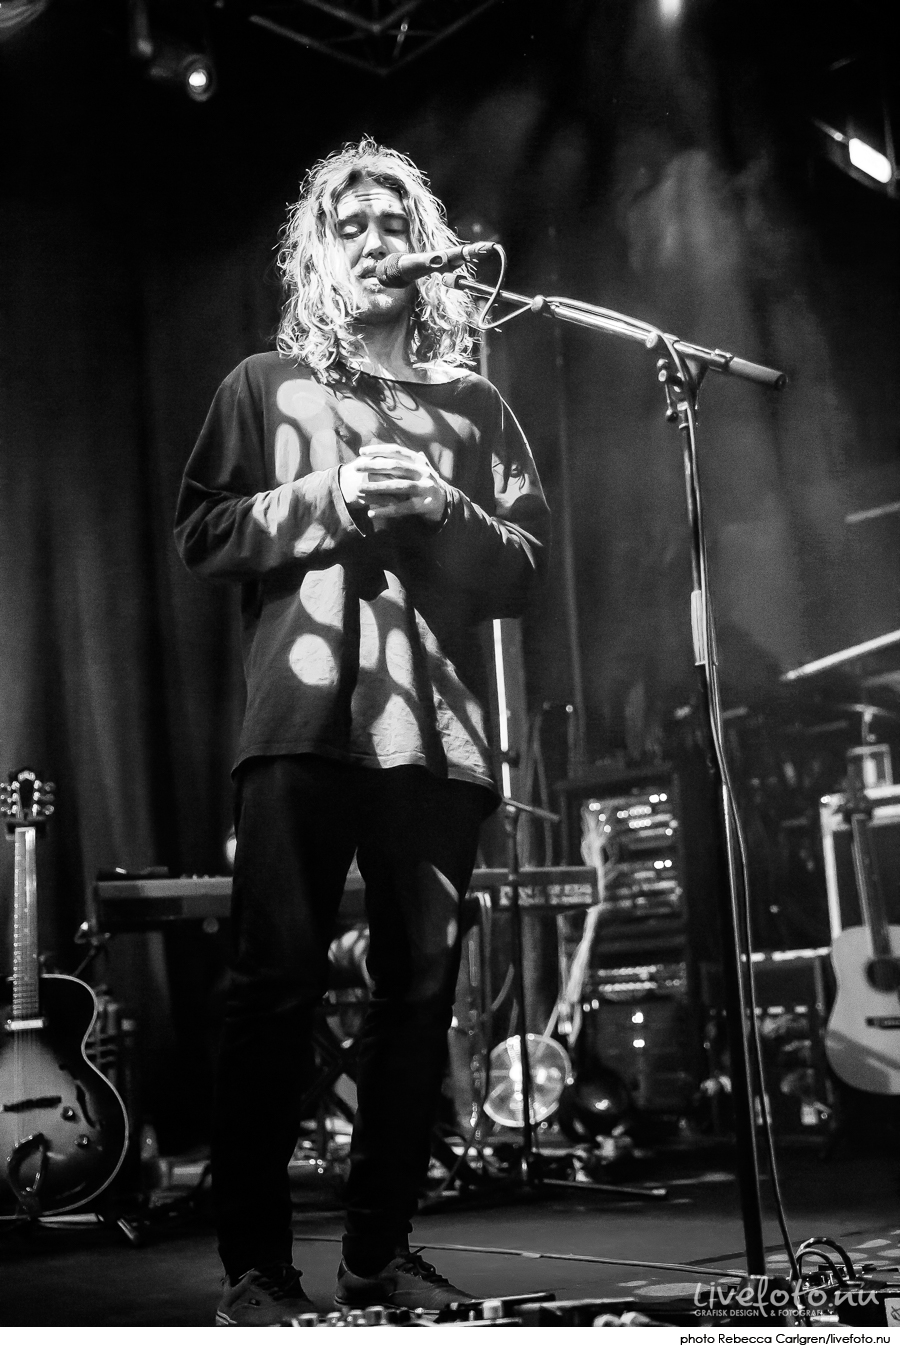 160321-Matt-Corby_photo_Rebecca-Carlgren_livefoto.nu_-2